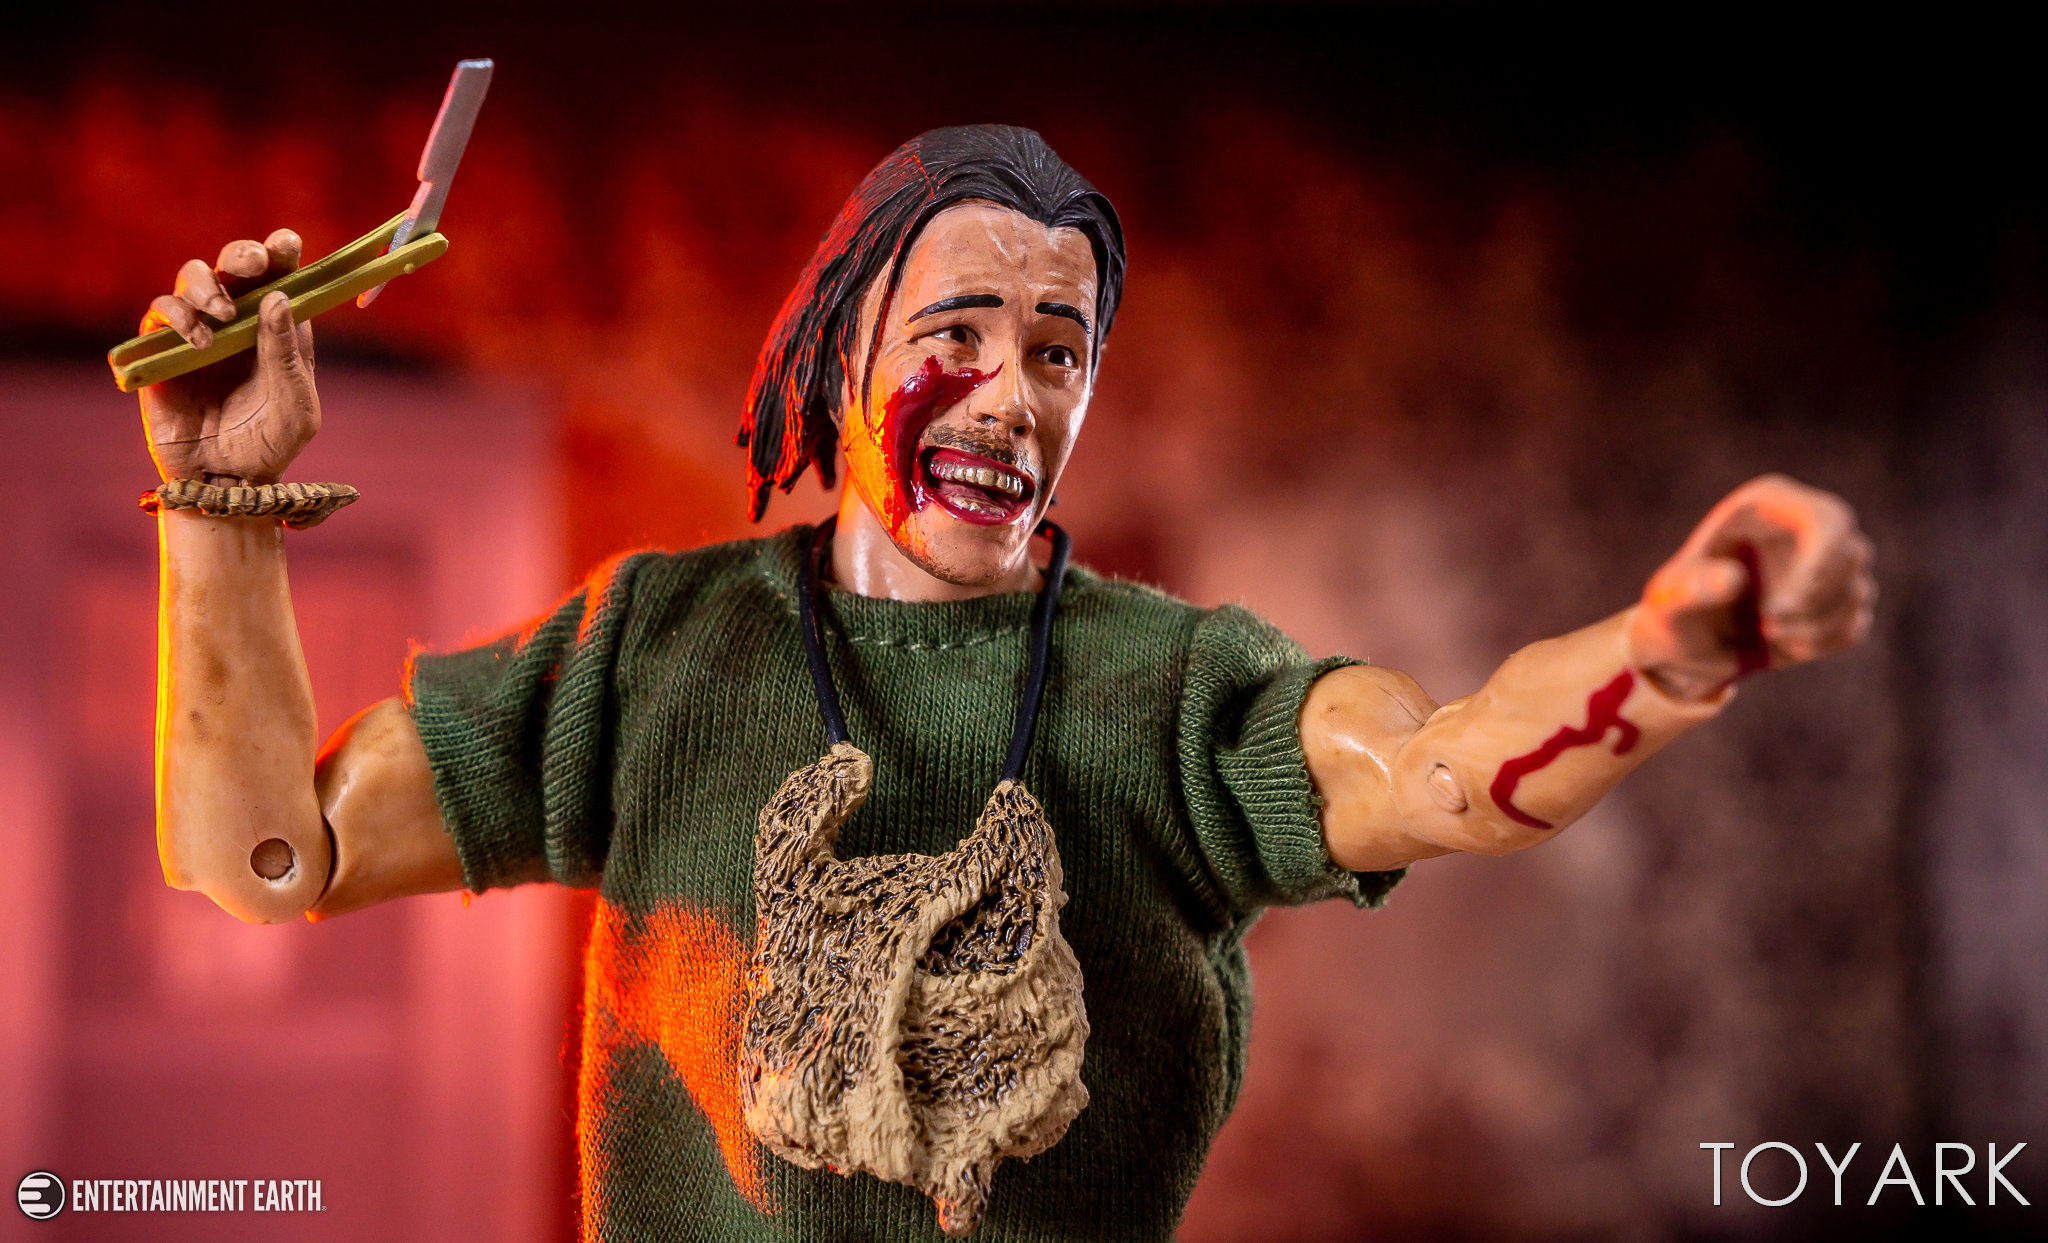 http://news.toyark.com/wp-content/uploads/sites/4/2018/04/Texas-Chainsaw-Nubbins-Set-NECA-027.jpg